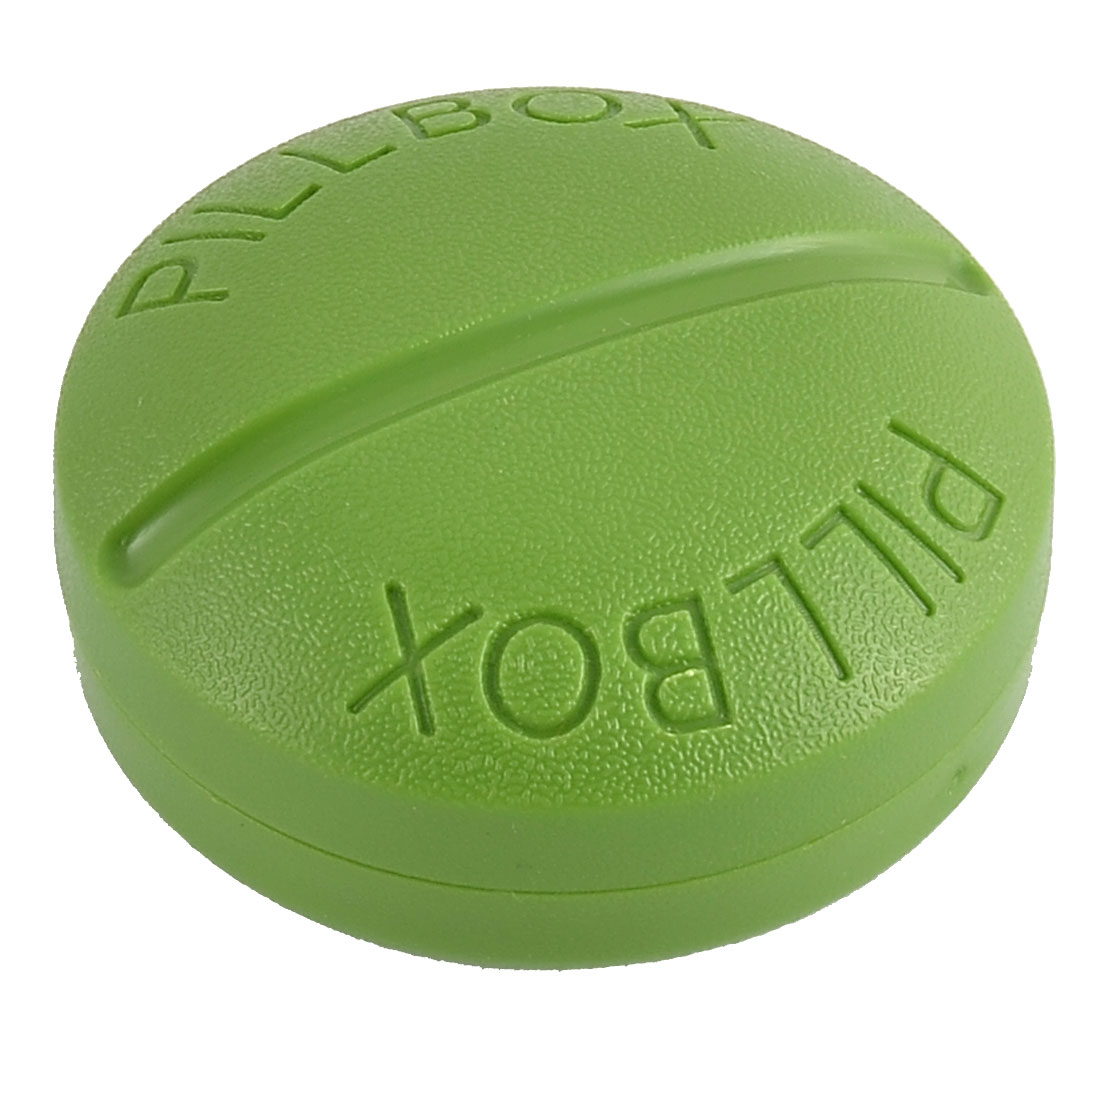 Plastic Round Design Daily Pill Tablet Medicine Storage Case Box Green